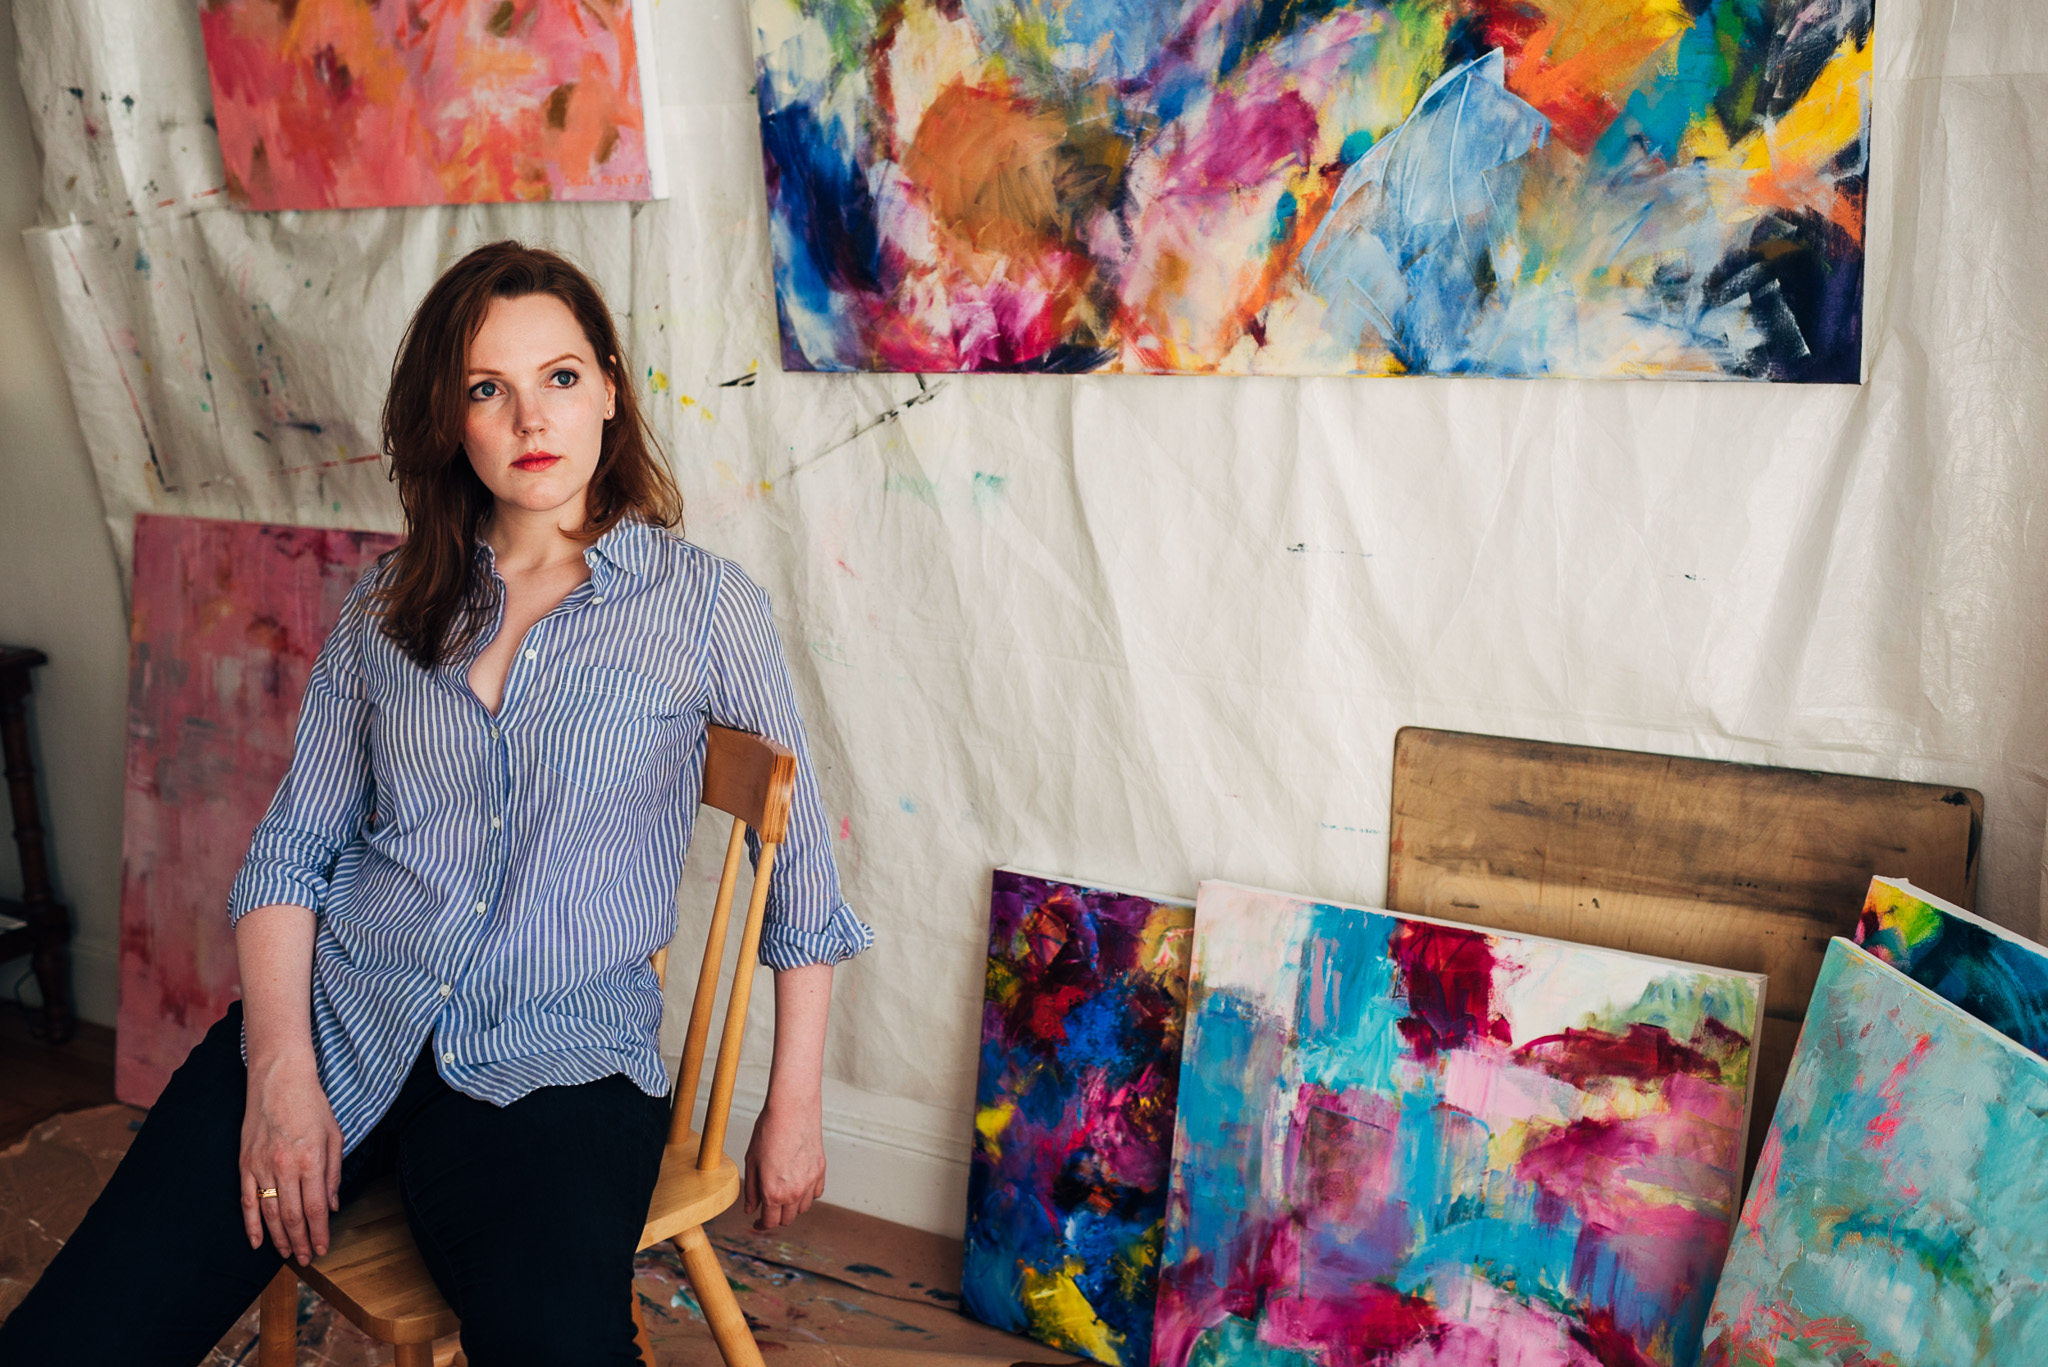 Abstract Painter Chloe Meyer